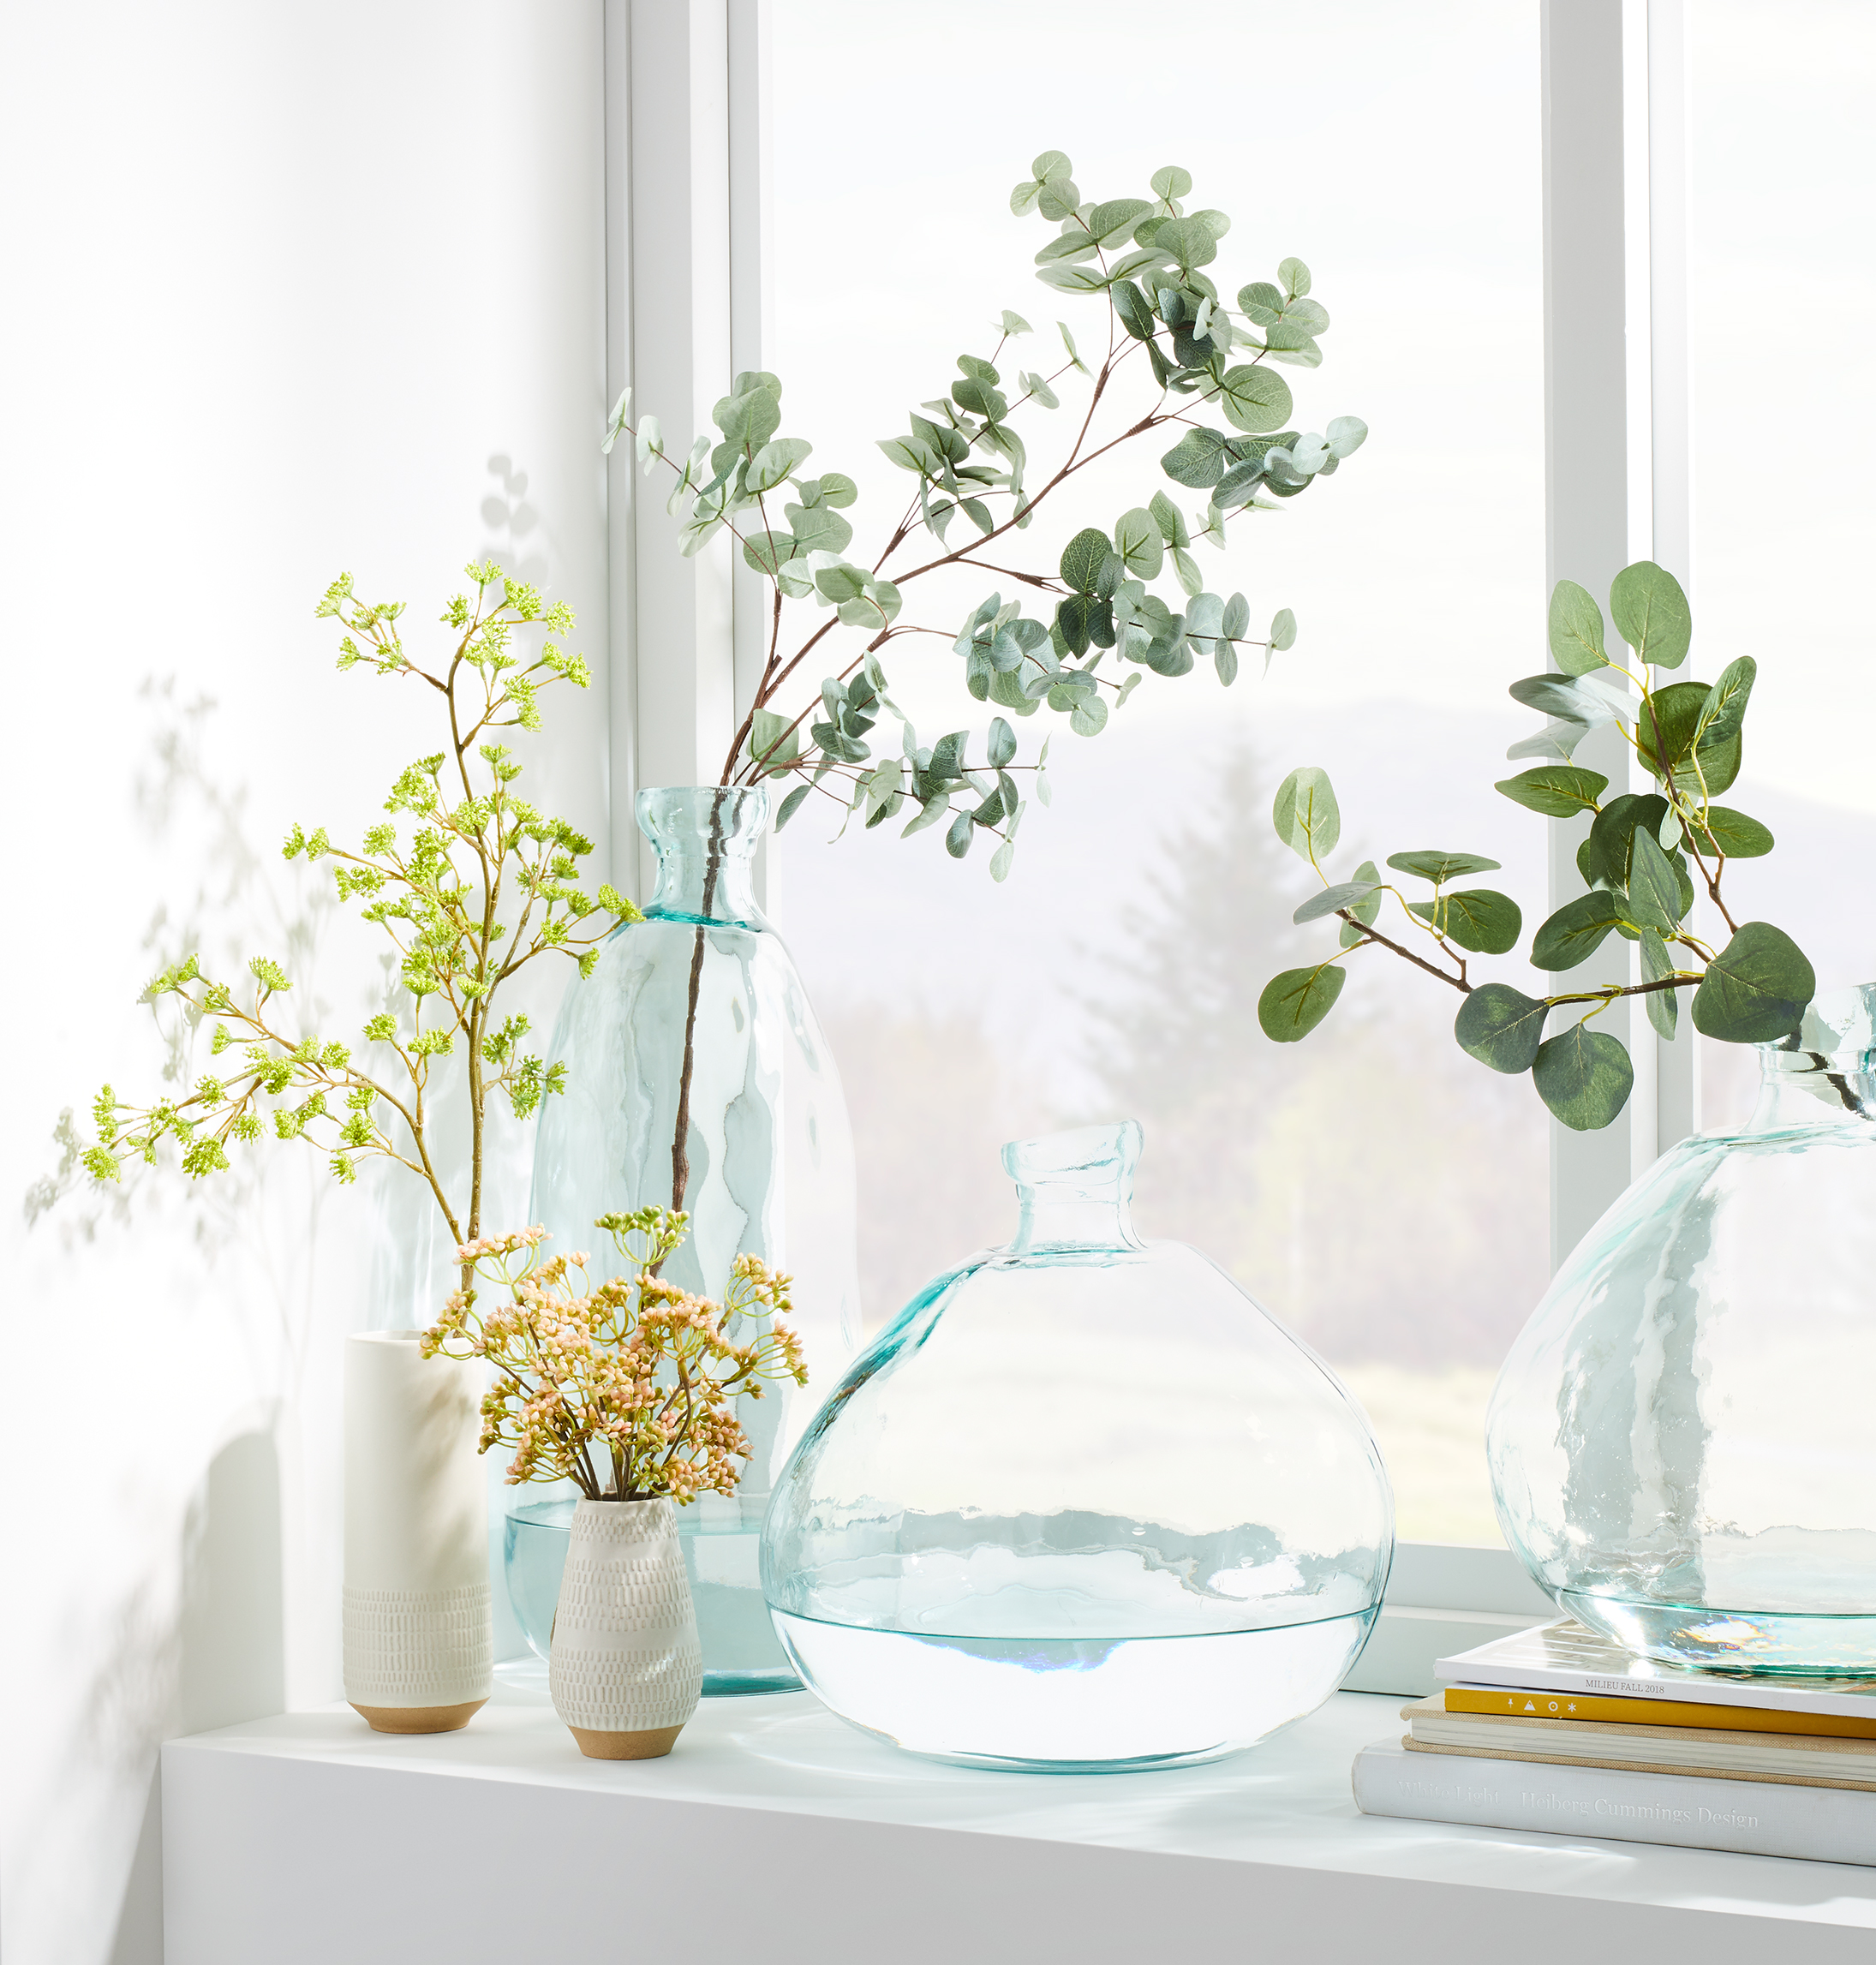 glass vases with stems